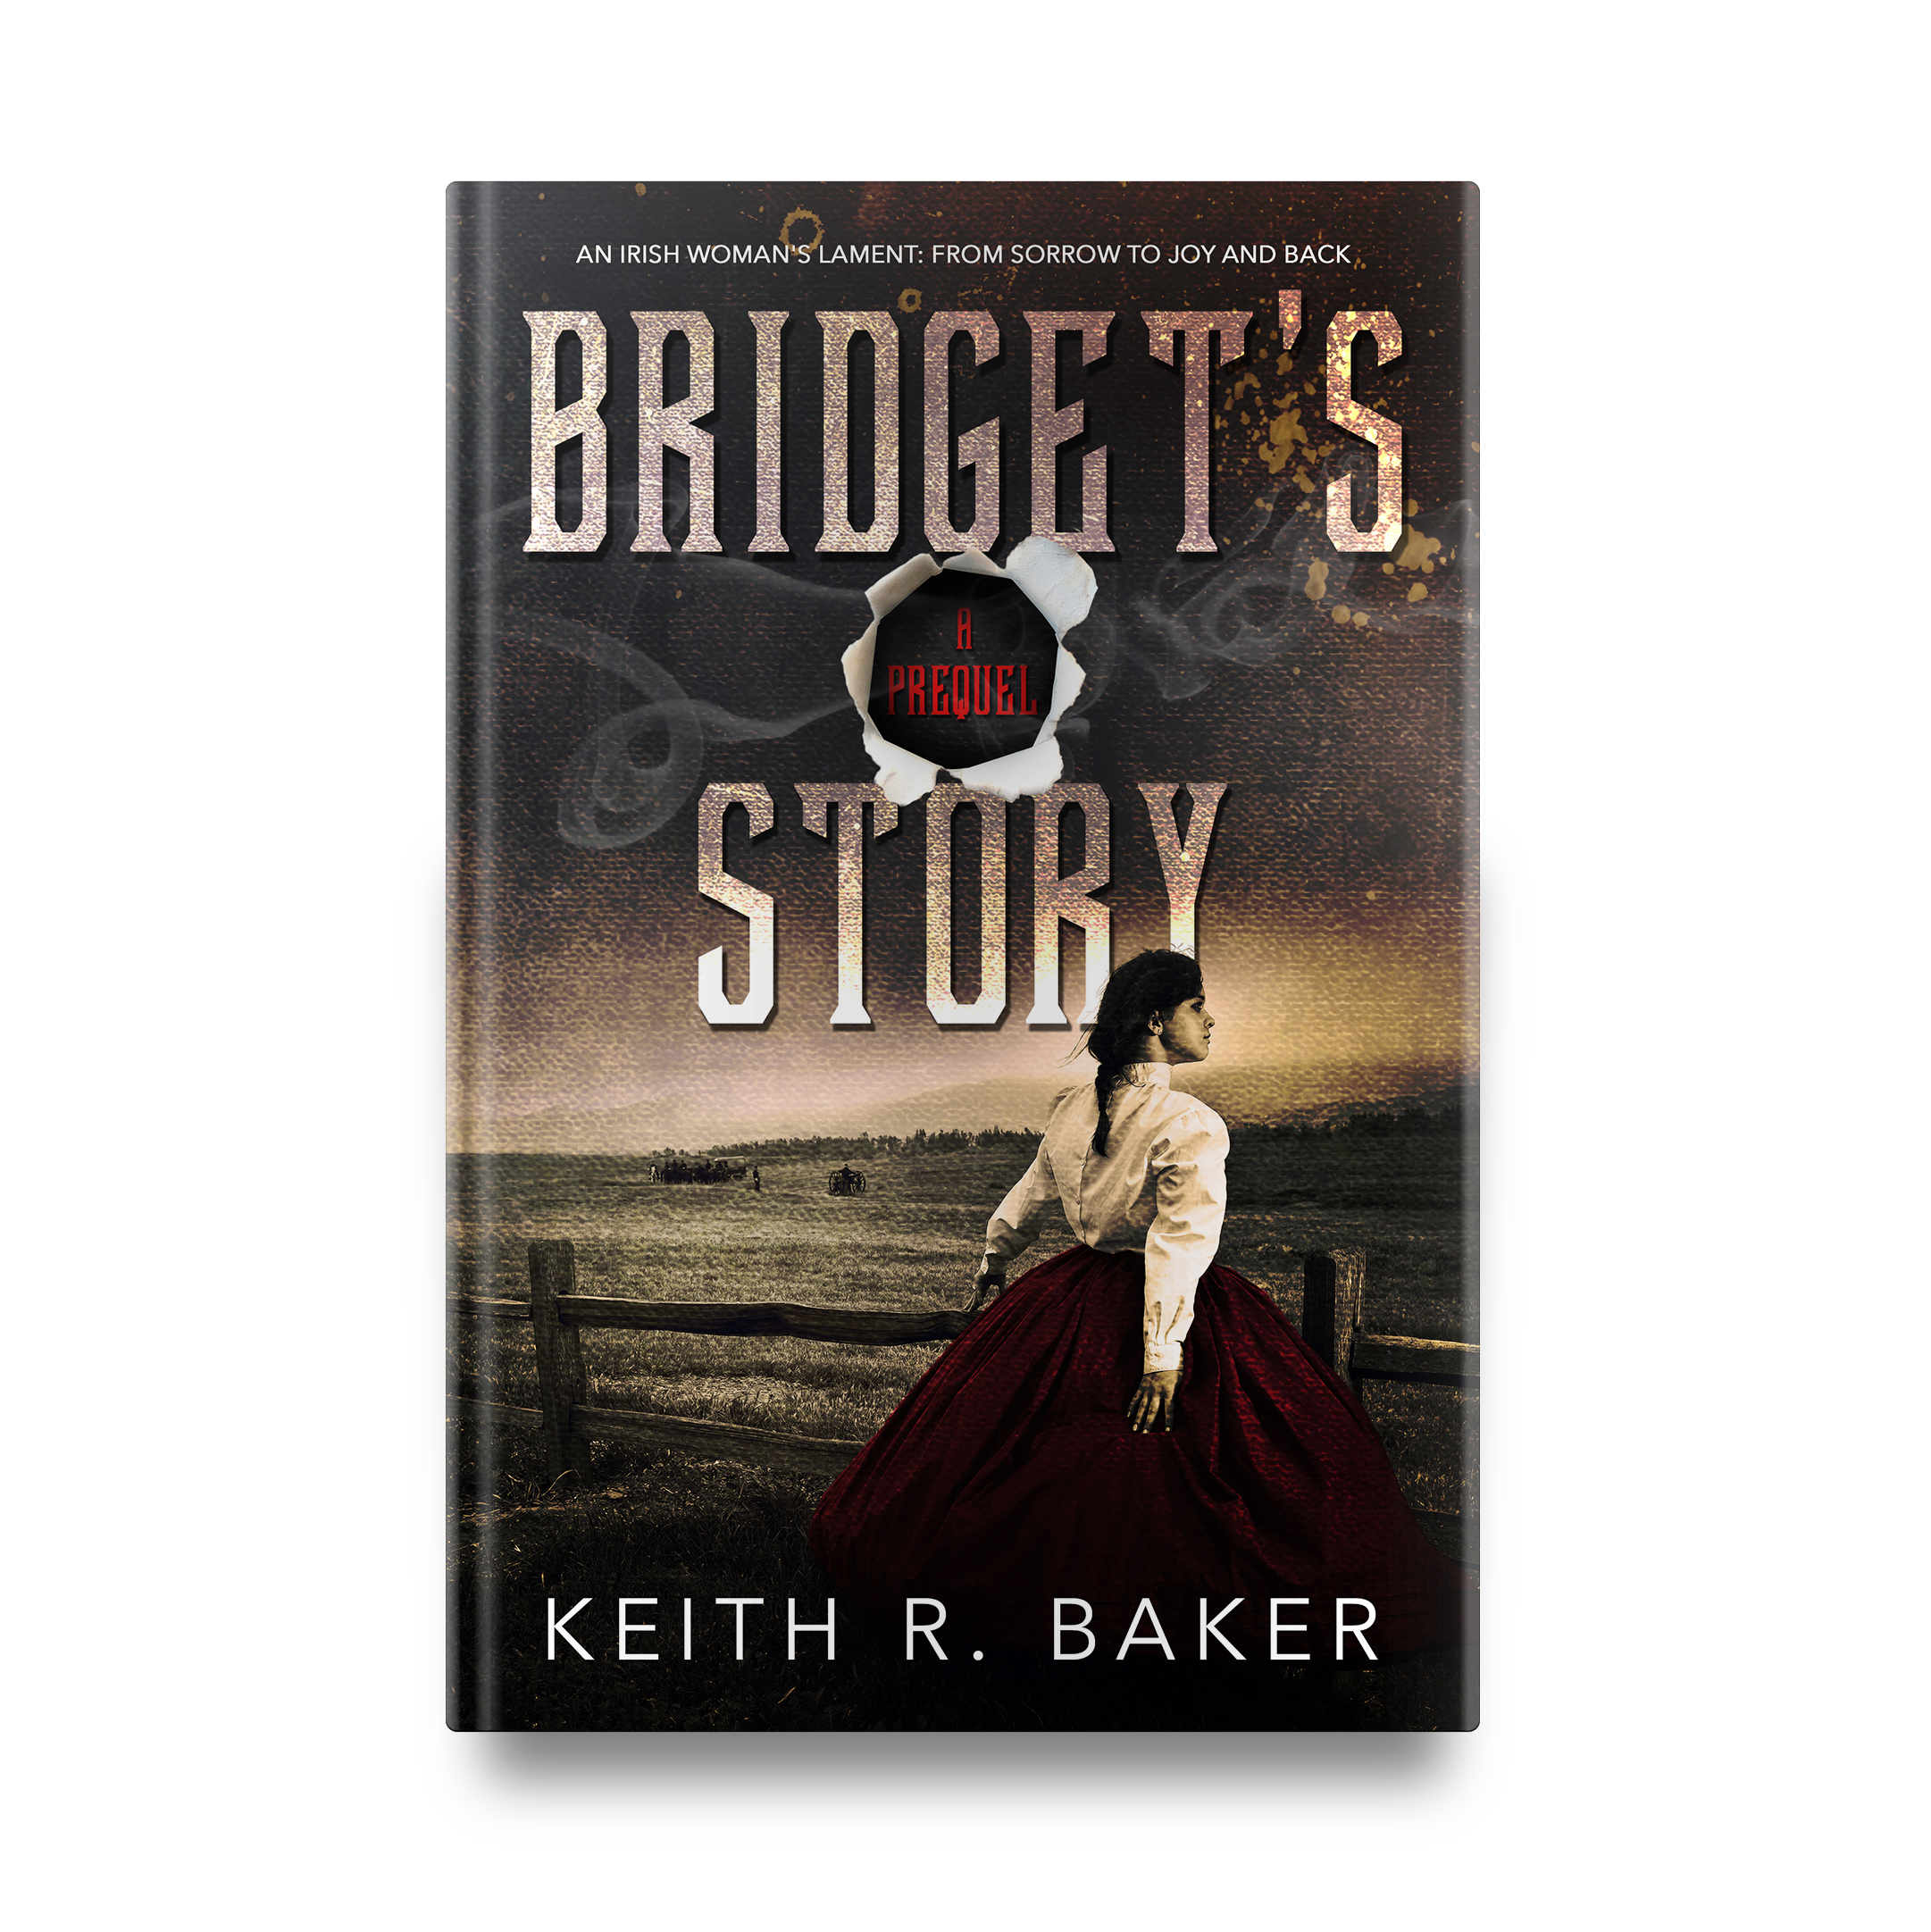 Keith R. Baker's Bridget's Story || Designed by TheThatchery.com